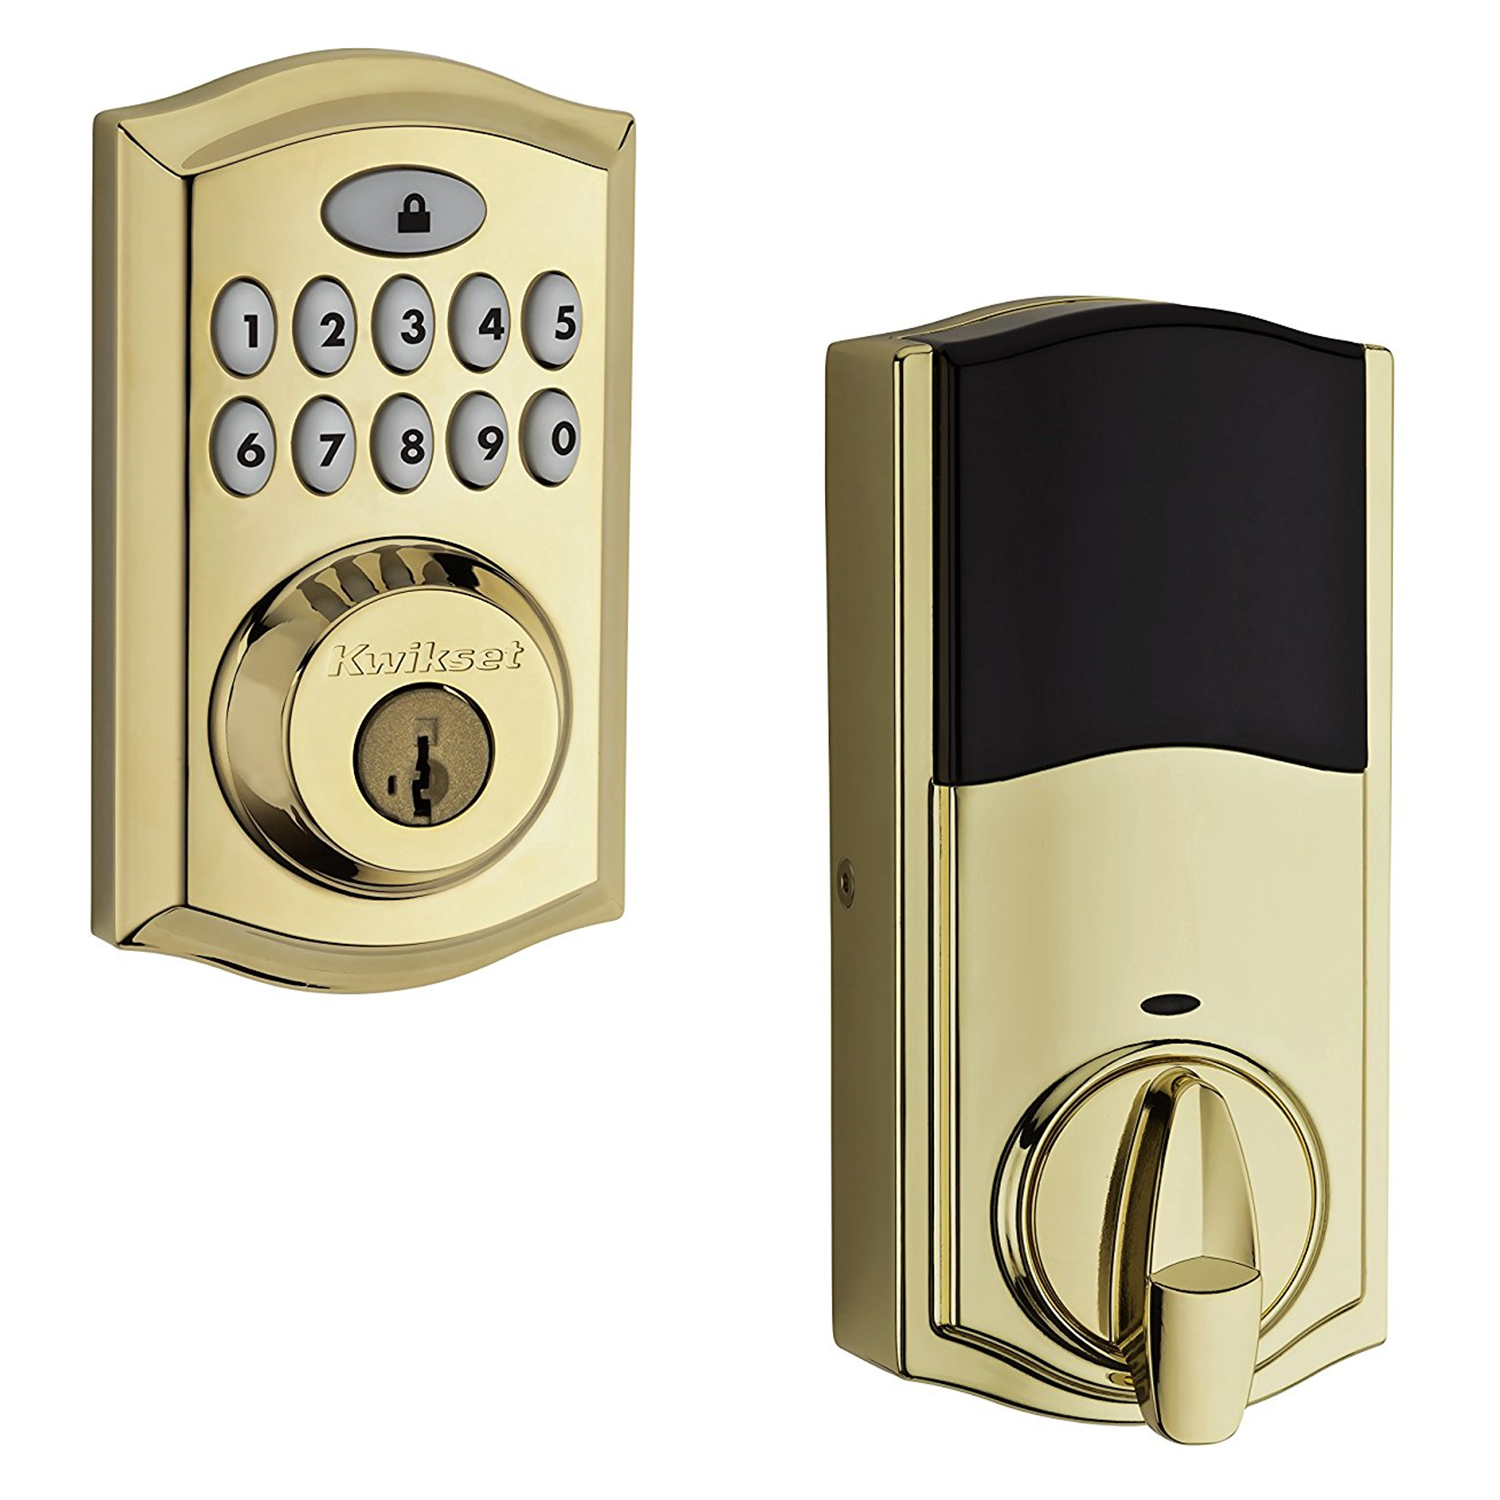 Kwikset 99130-001 Polished Brass SmartCode® 913 Electronic Deadbolt